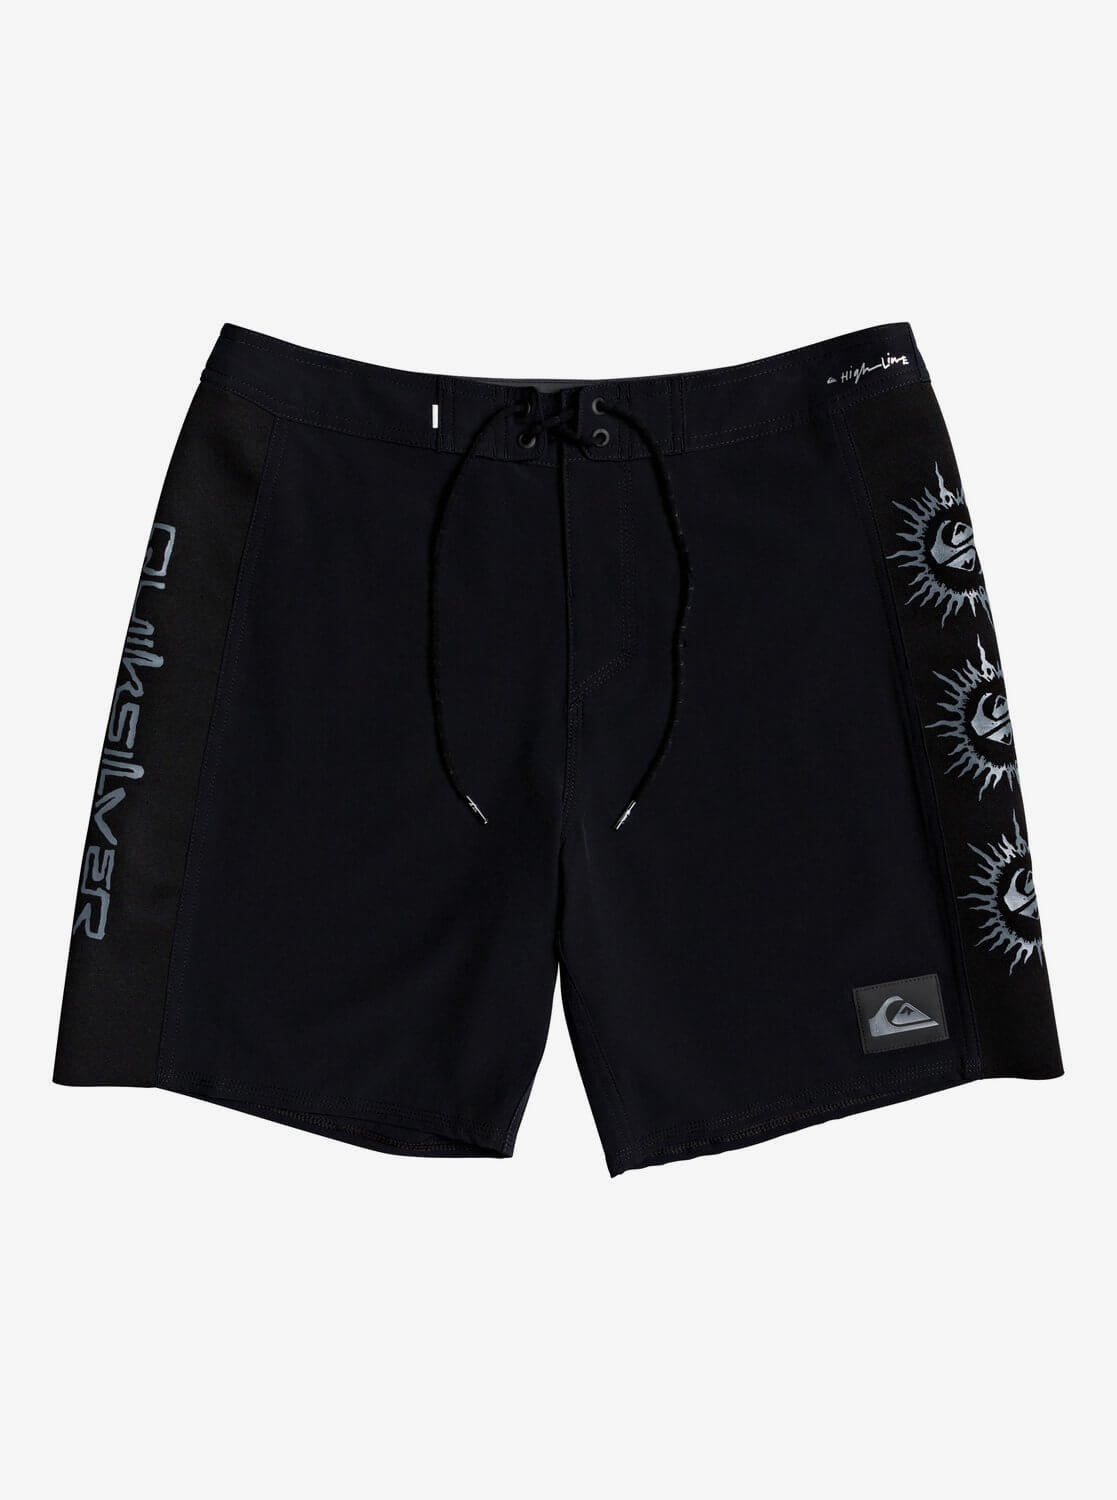 Quiksilver Mens 2020 | The 69 Capsule Surf Apparel Collection